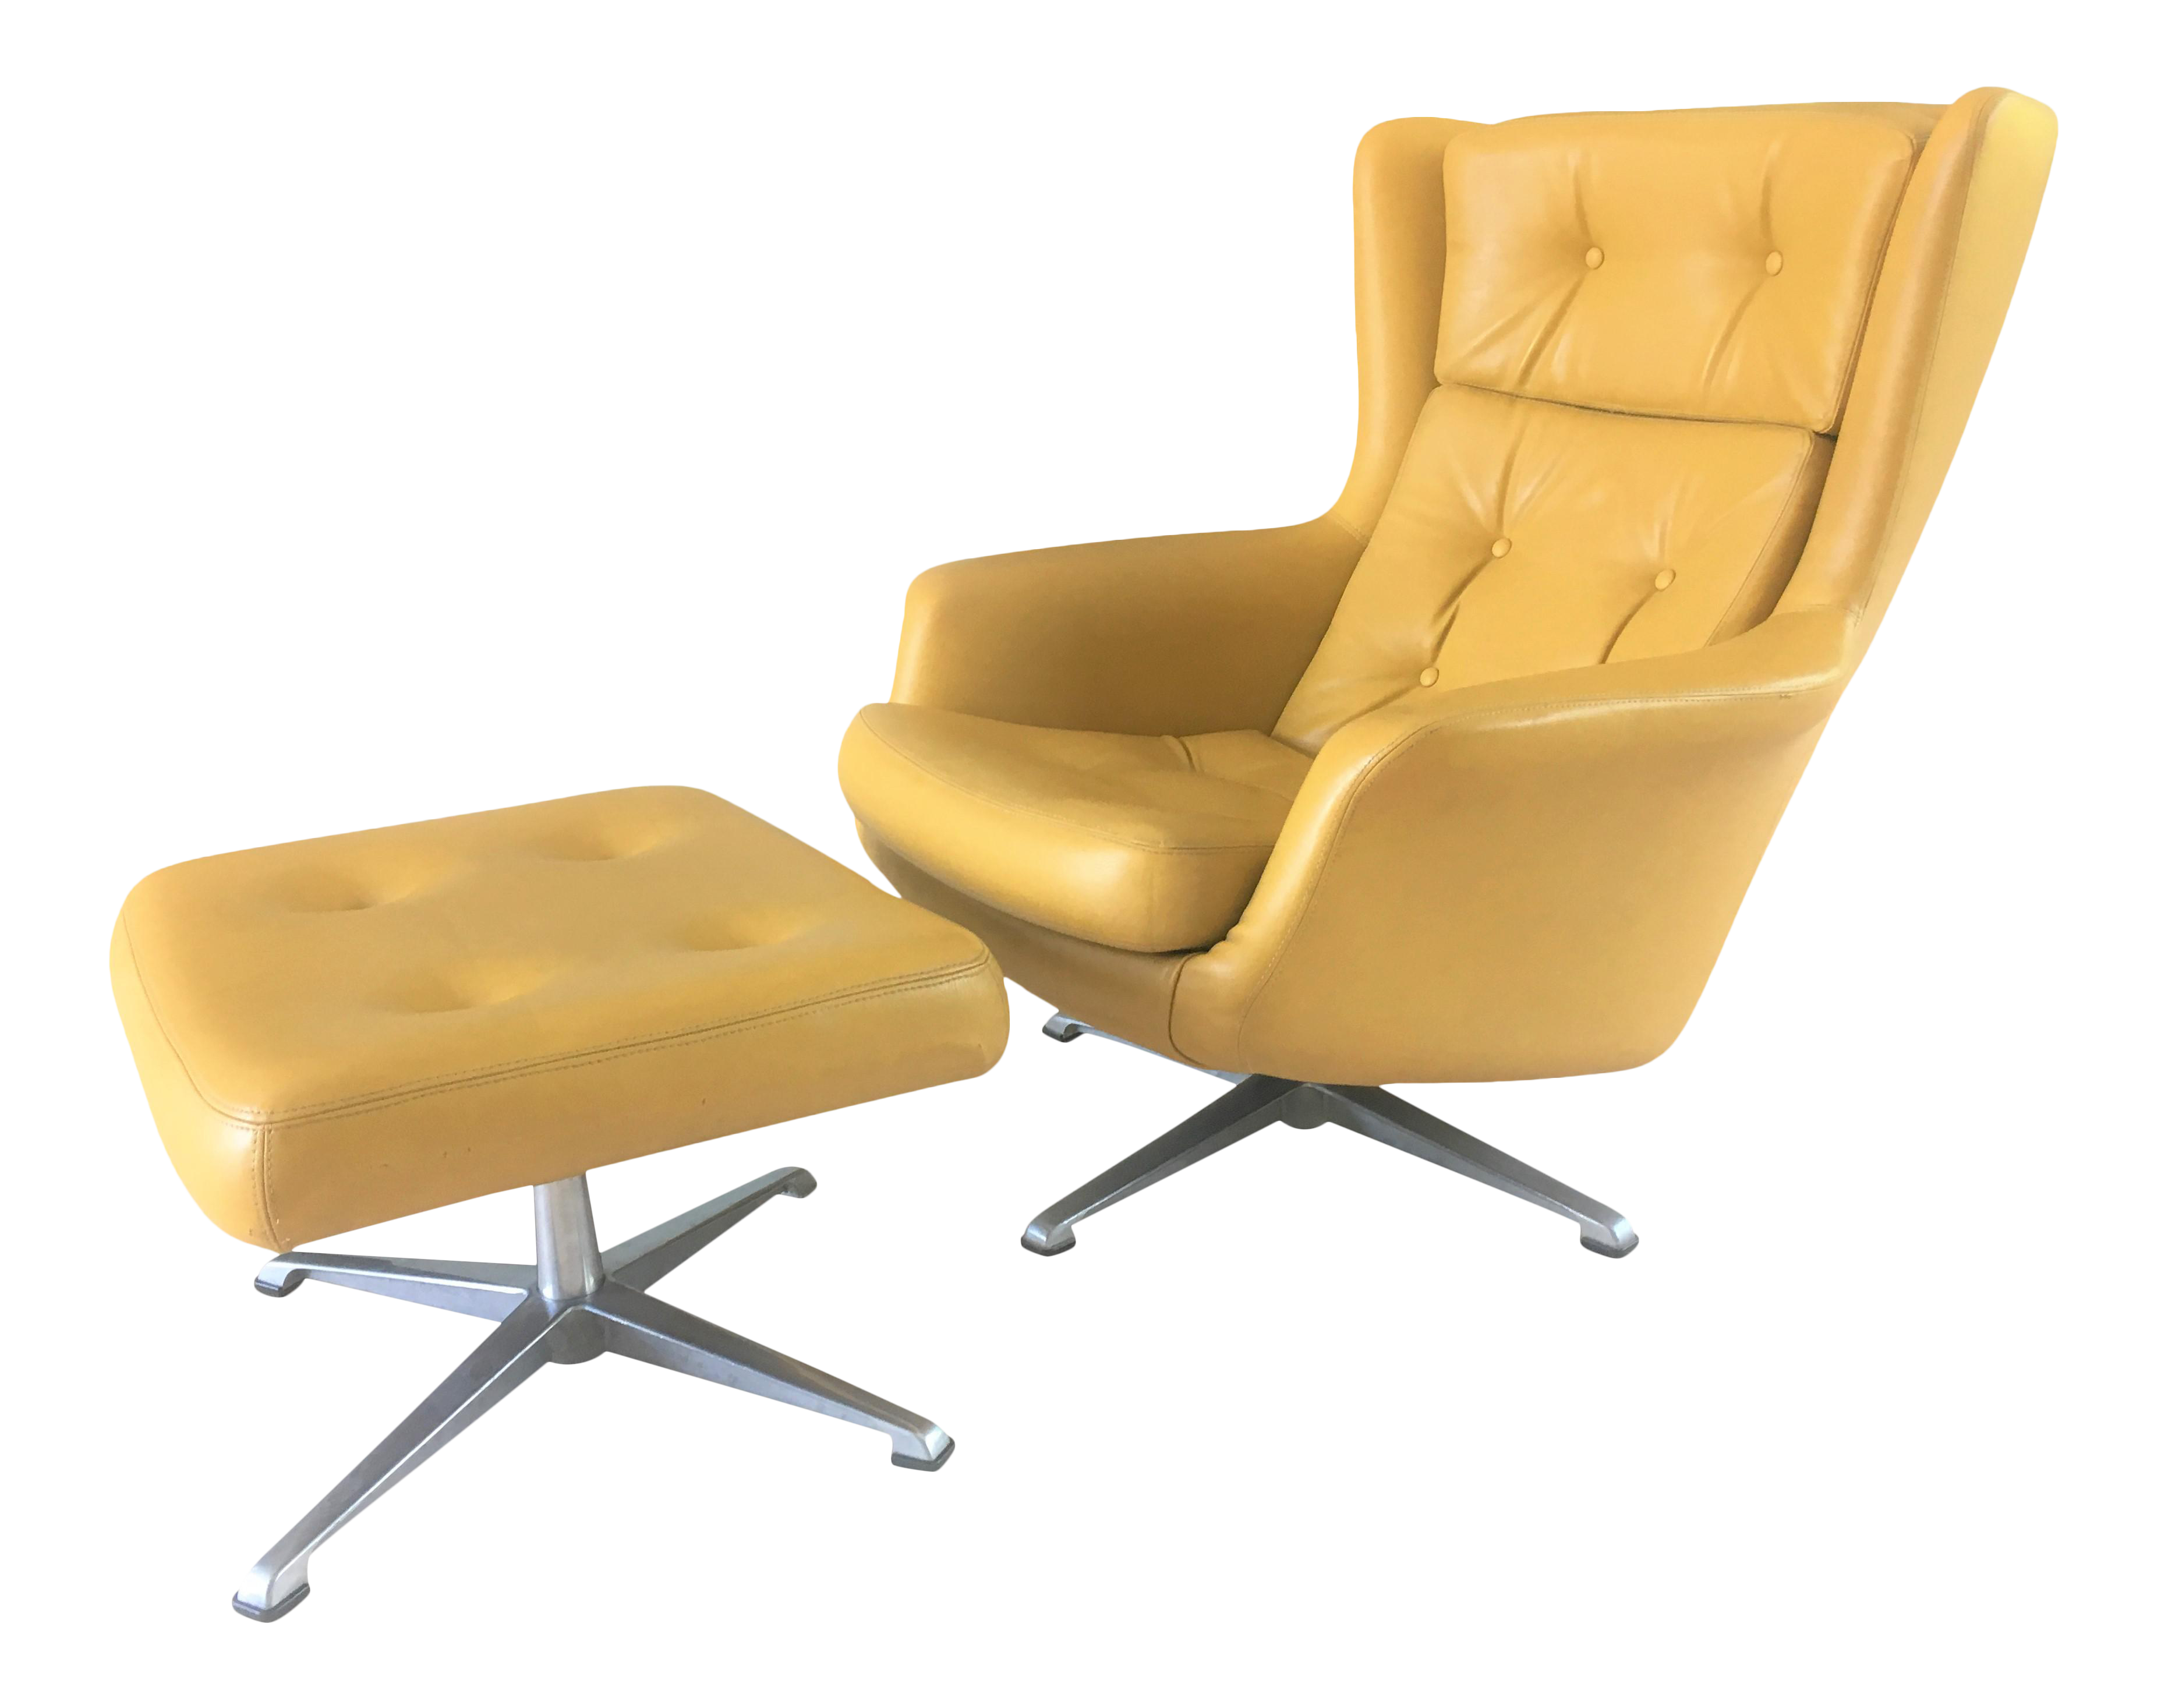 Wonderful Mid Century Modern Lounge Chair With Matching Ottoman. This Set  Is So Remarkably